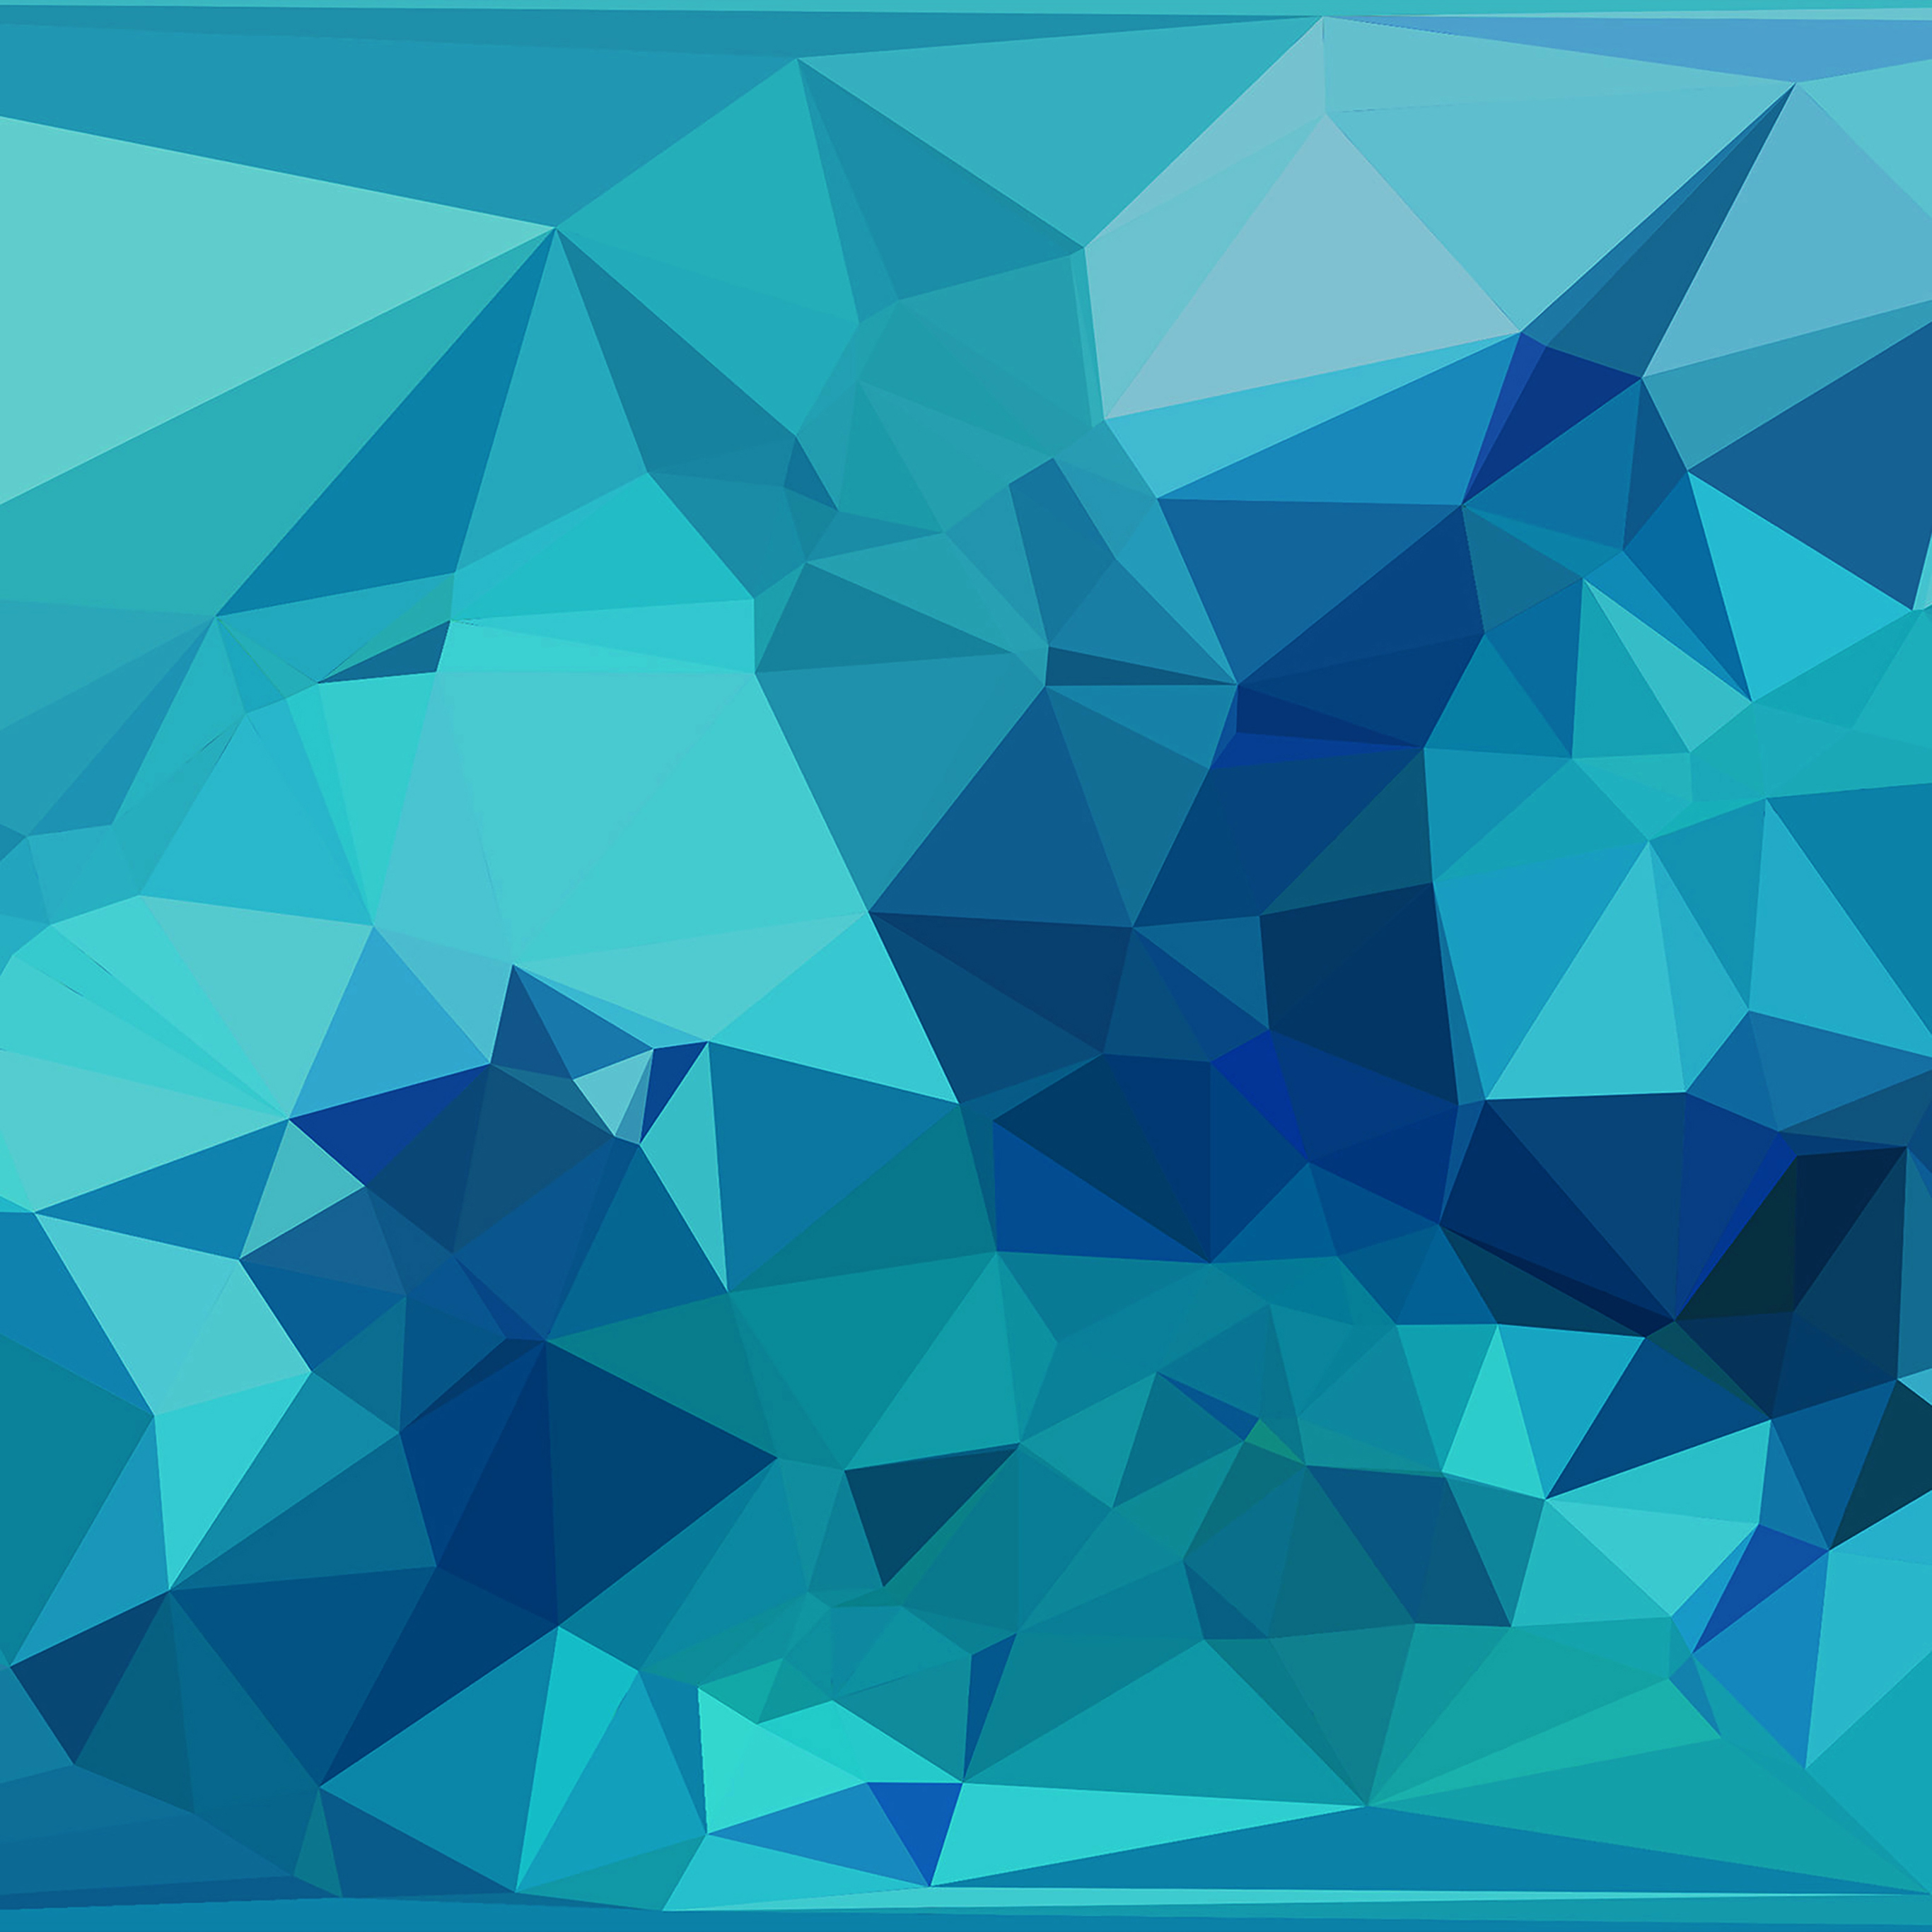 3d Parallax Wallpaper Pro Vc96 Triangle Of Blue Patterns